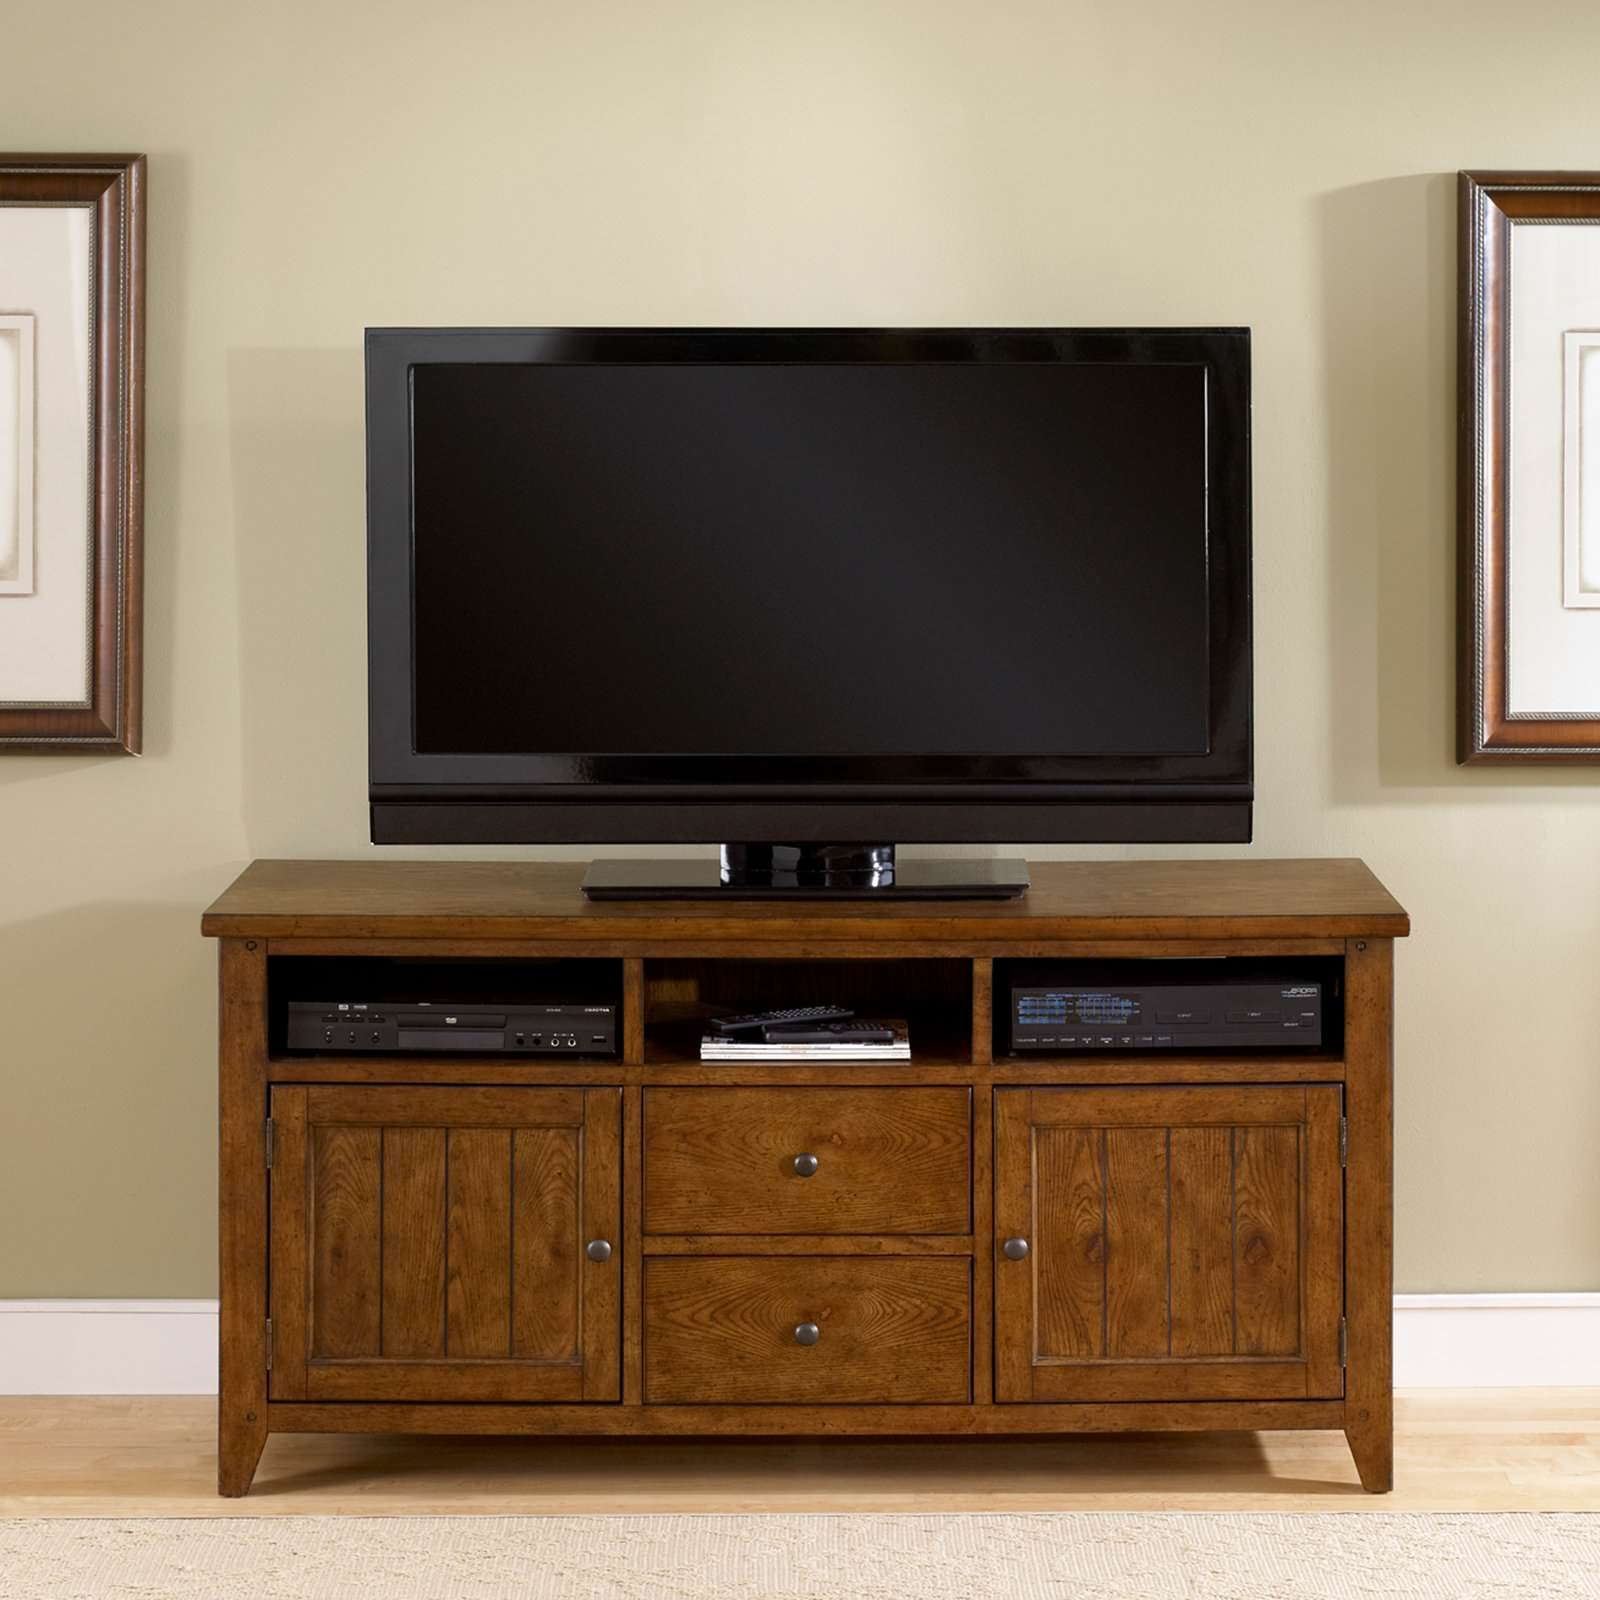 Unique Tv Stands For Flat Screens Inside Well Known Unique Oak Rustic Tv Stands For Flat Screens : Rustic Tv Stands For (Gallery 12 of 20)